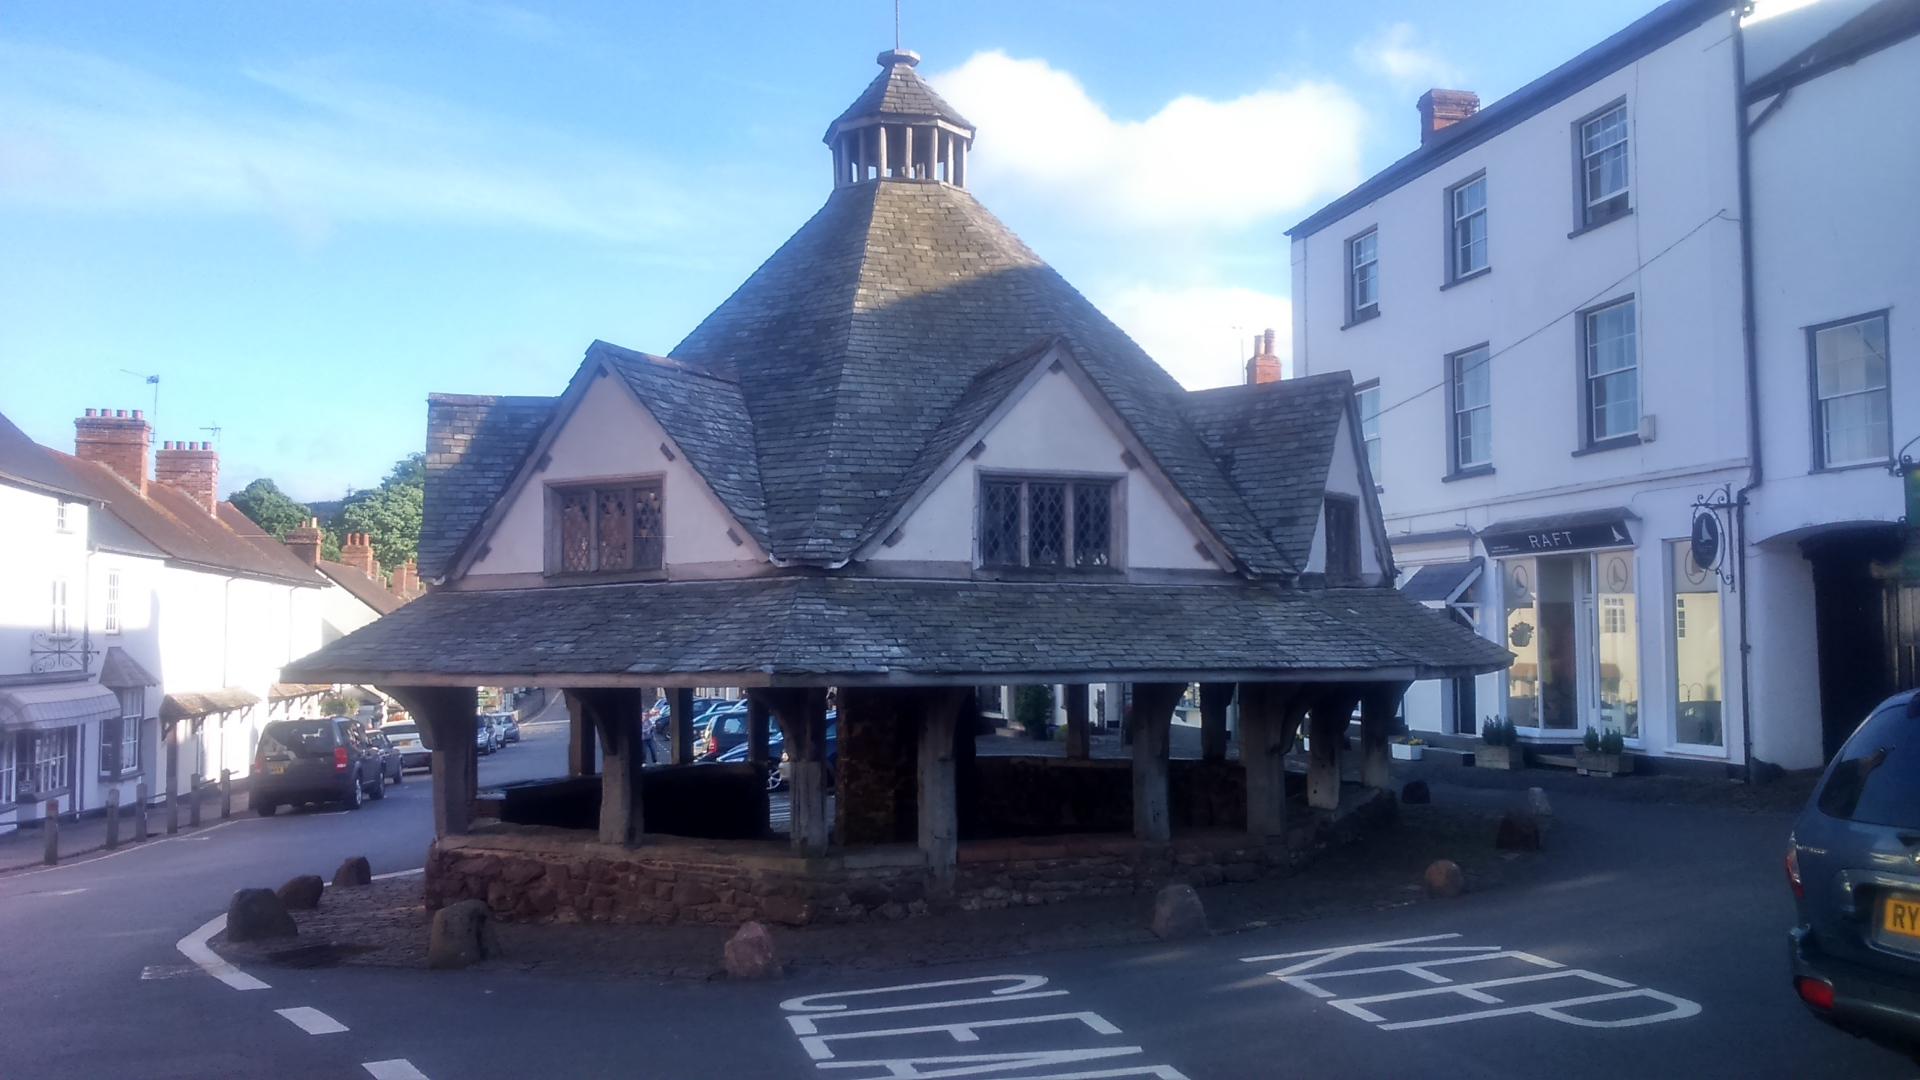 somerset, dunster, beach, hut, salad, days, Dunster Yarn Market, High St, Dunster, Somerset